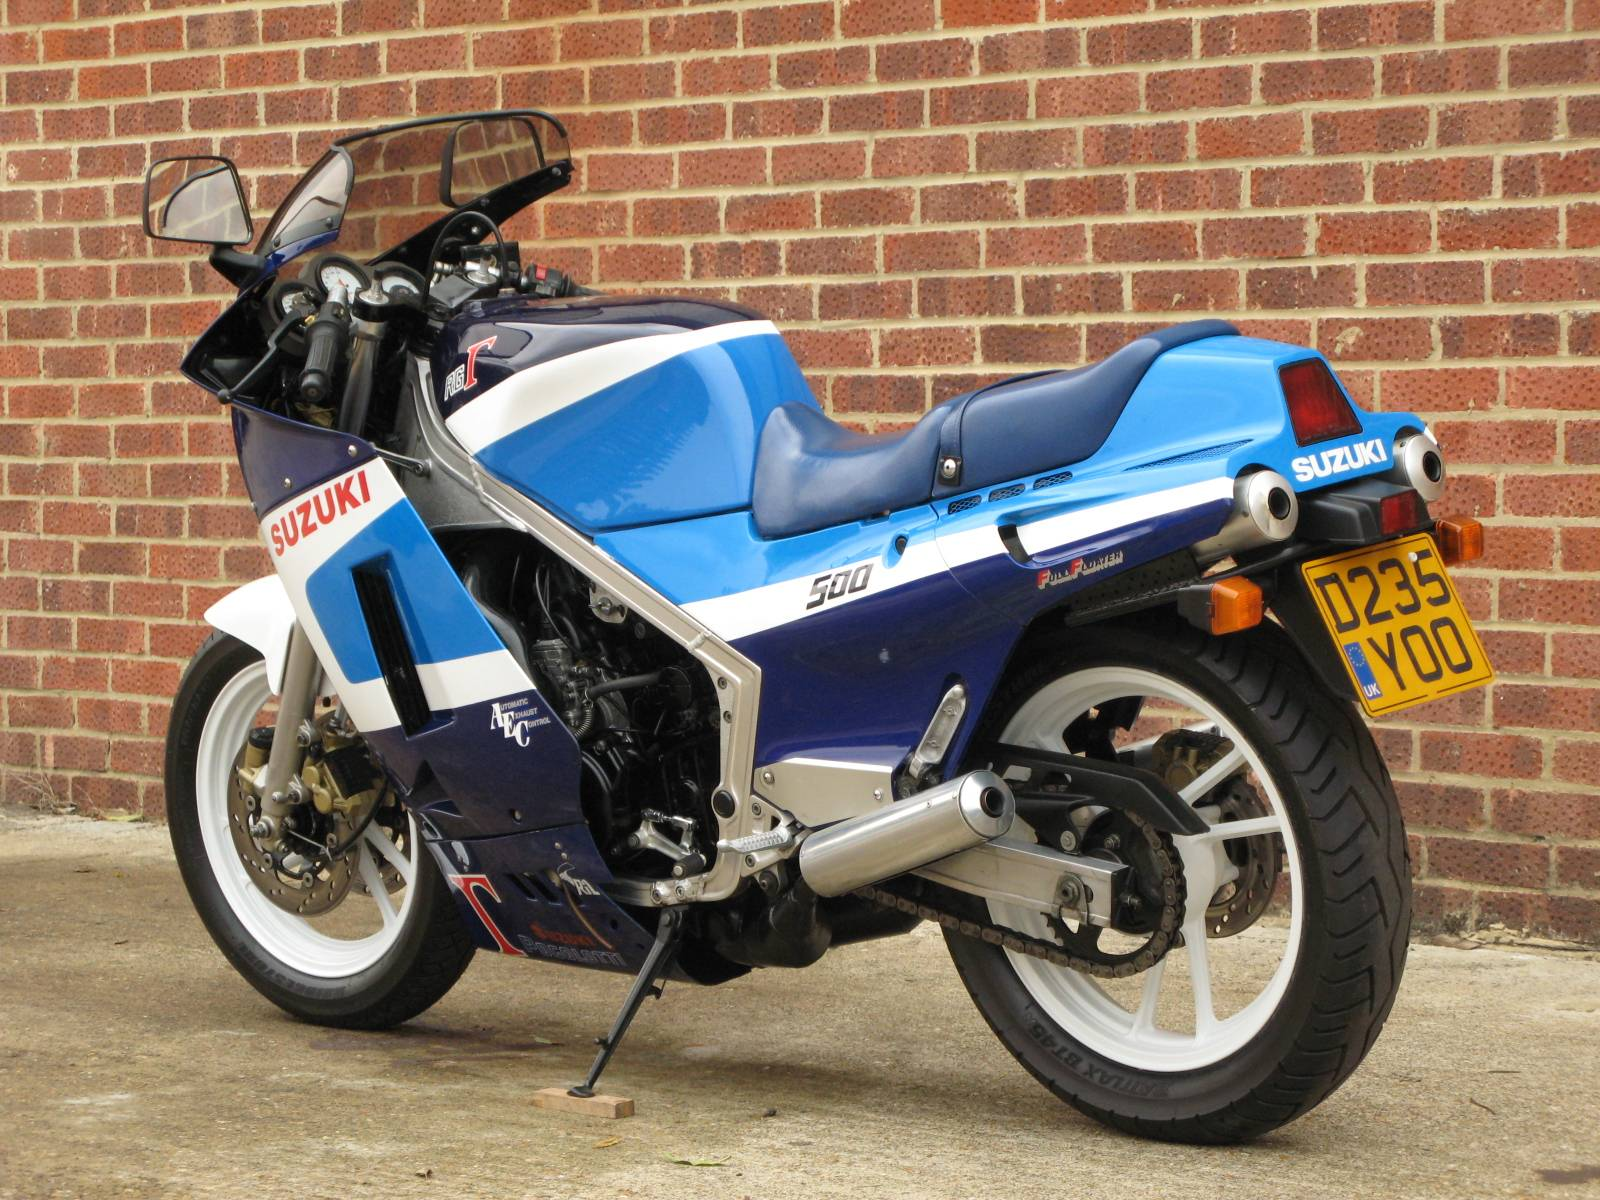 For Sale: Suzuki RG 500 Gamma (1986) offered for AUD 31,960